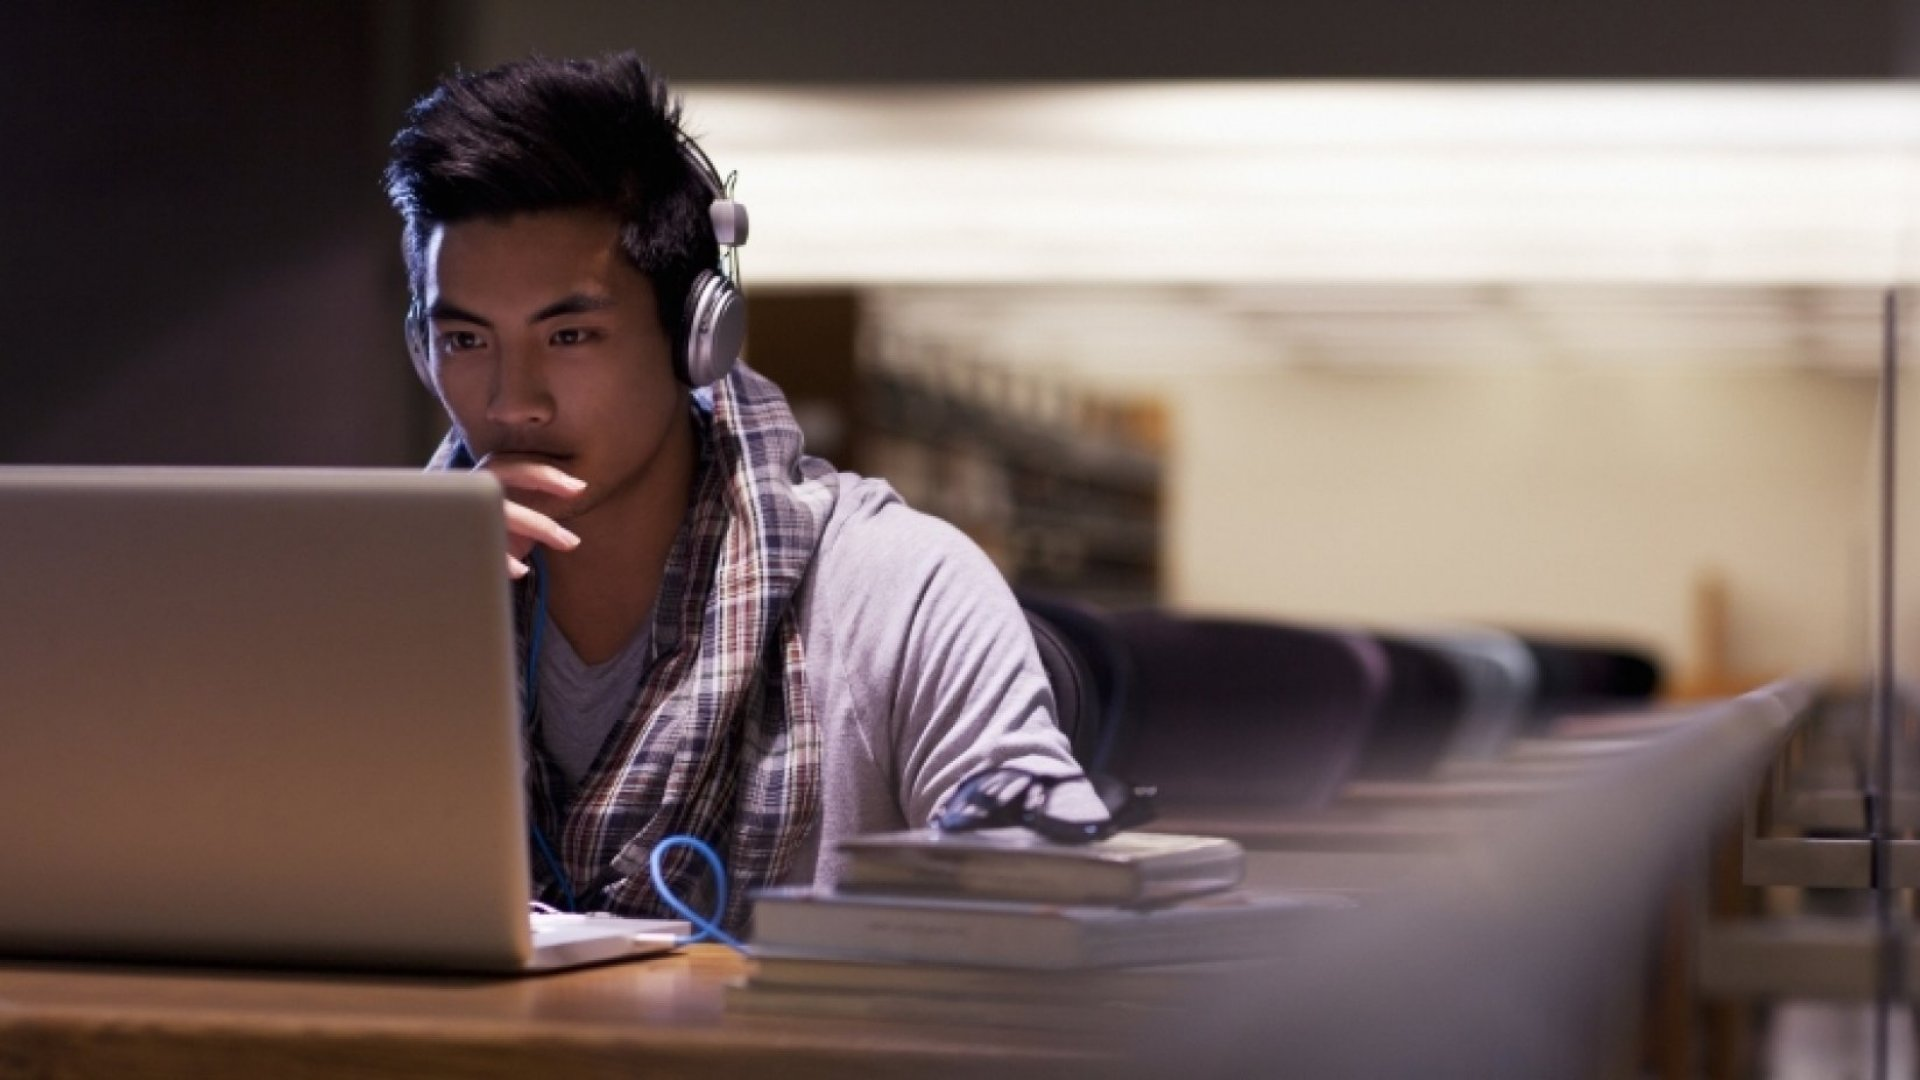 10 Reasons Why College Is the Best Time to Start Your Business